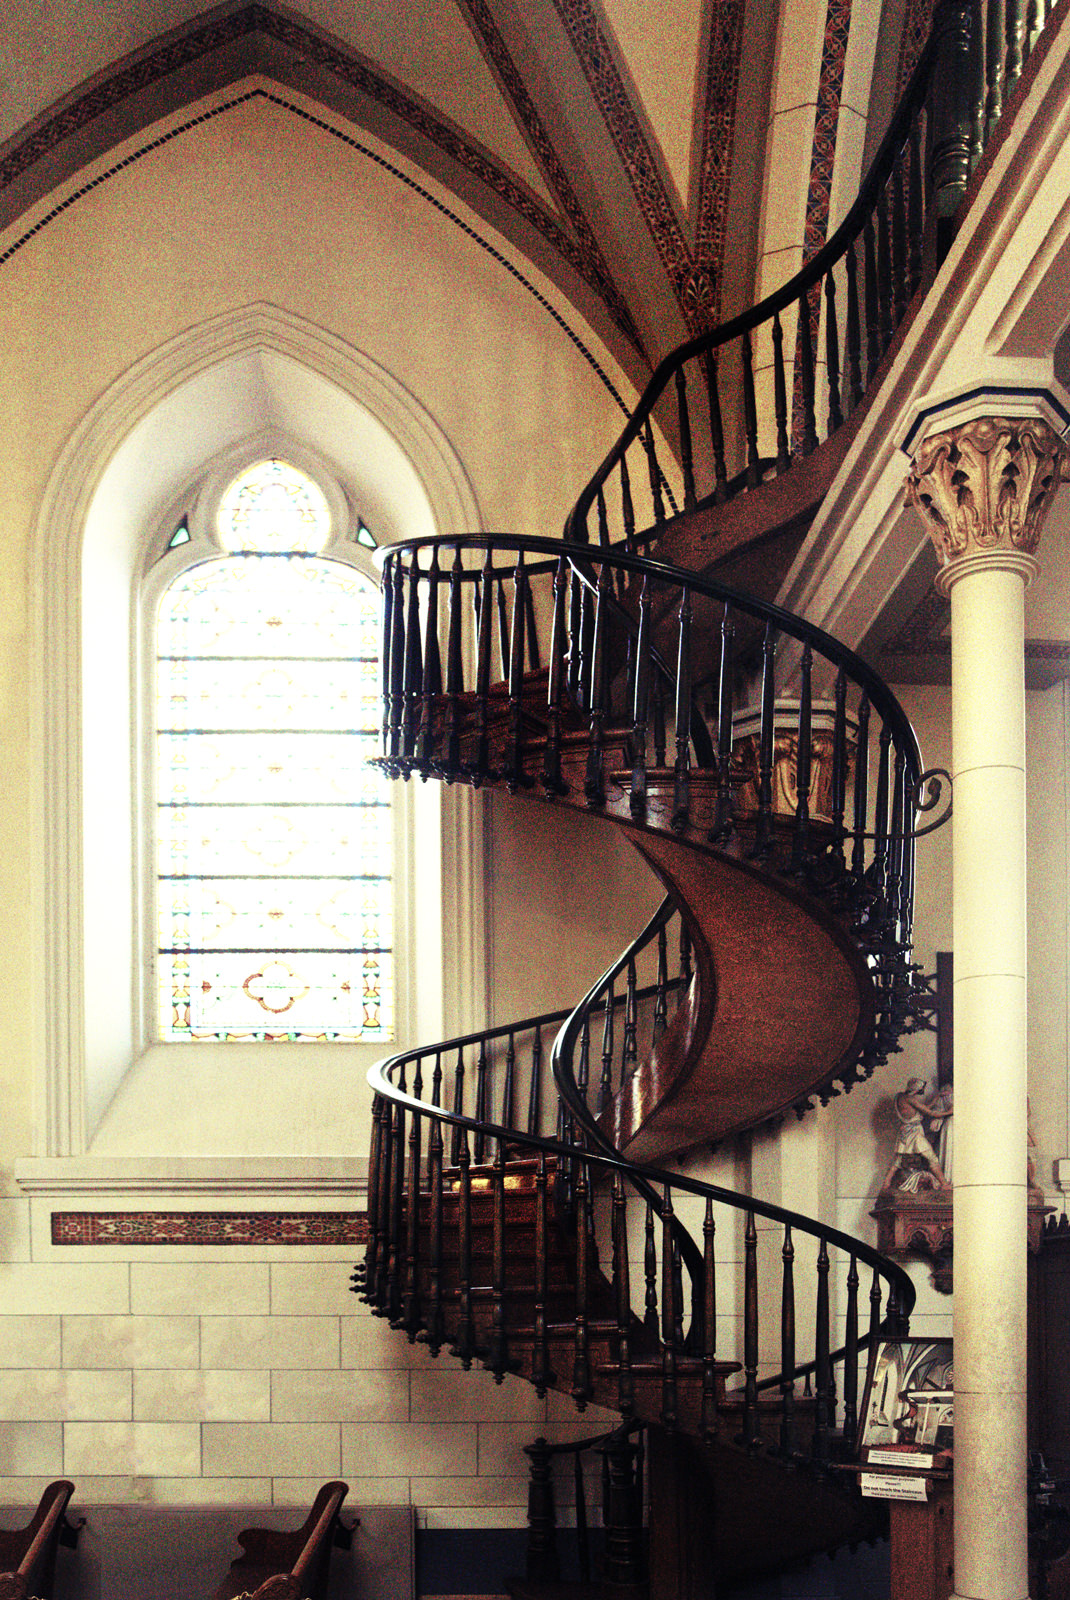 Miraculous Staircase at Loretto